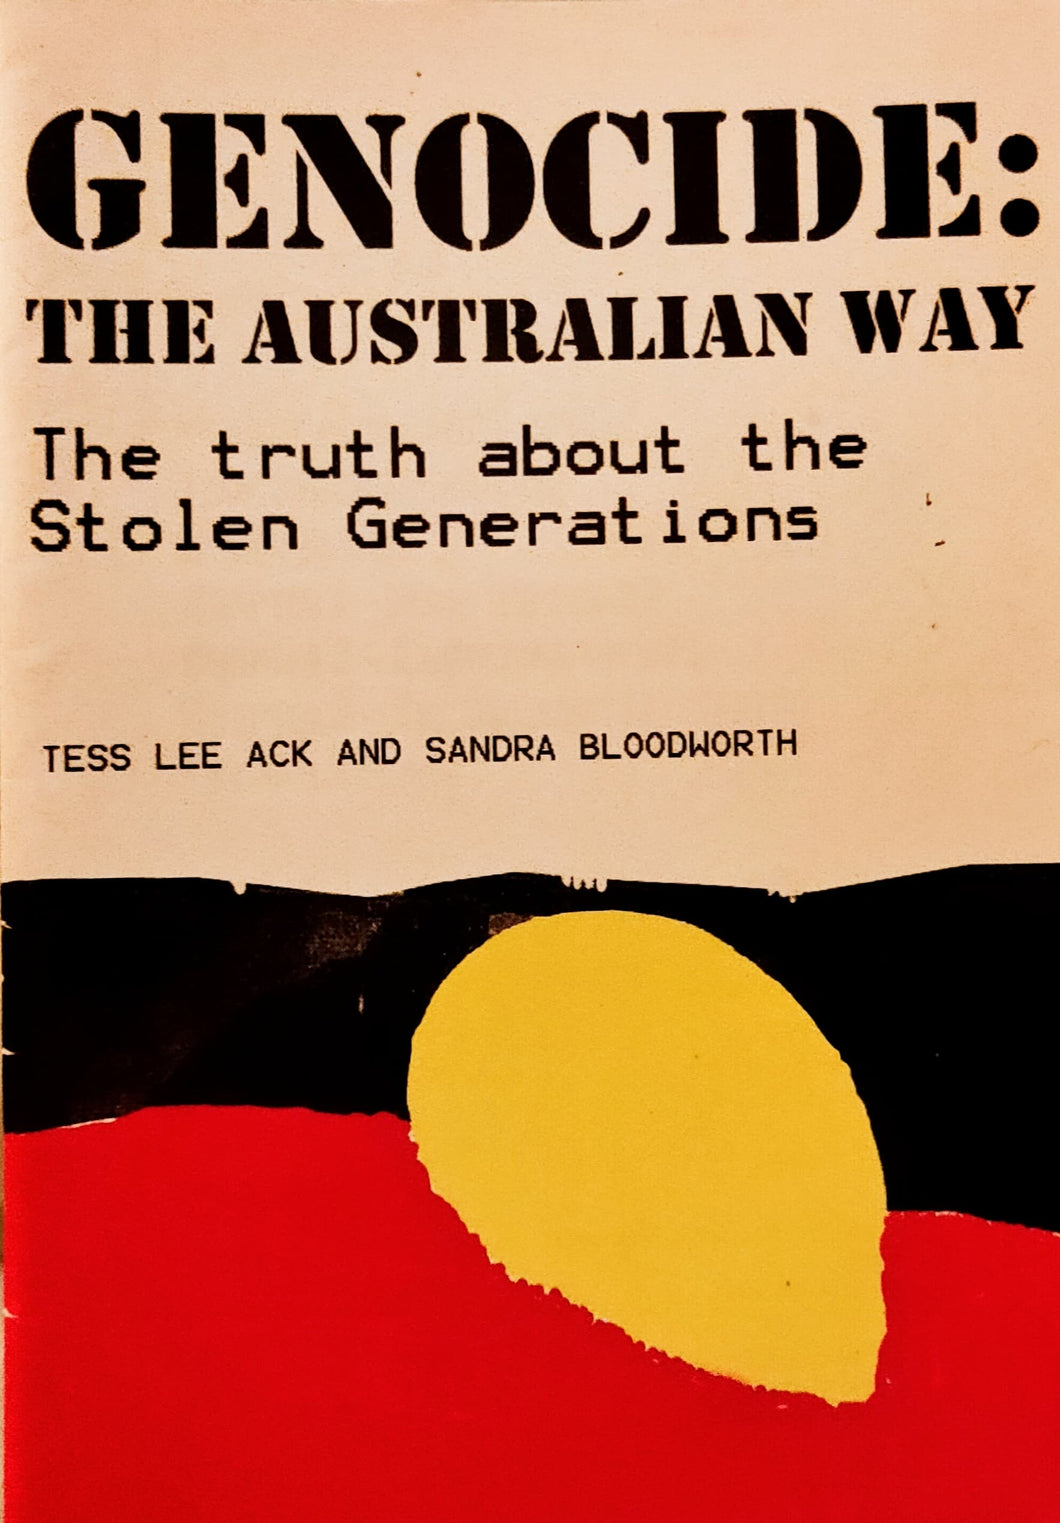 Genocide: The Australian Way